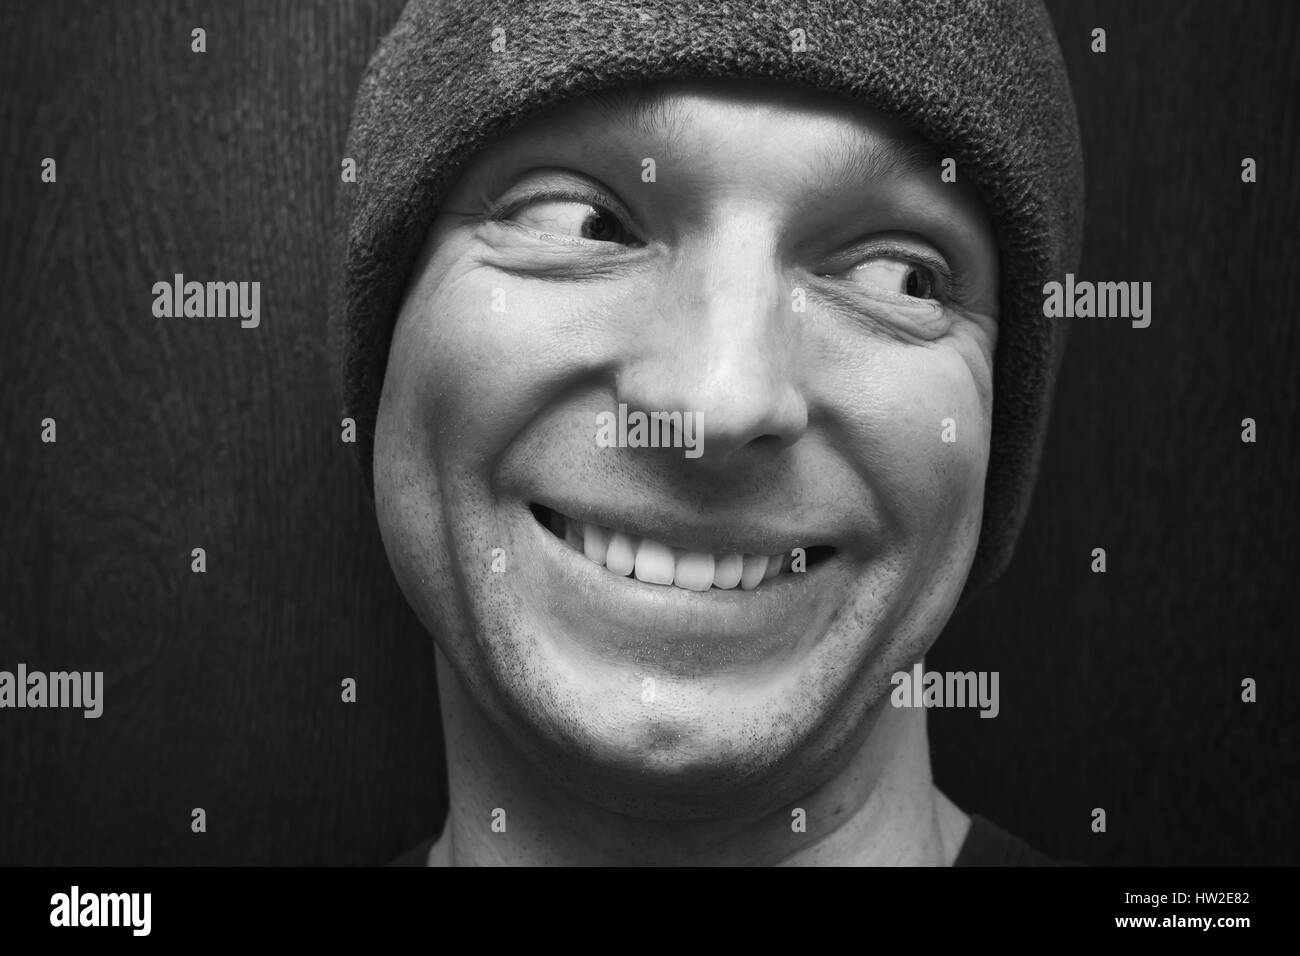 949383118ec Young handsome smiling man in gray hat. Close-up studio face portrait over  dark wooden wall background